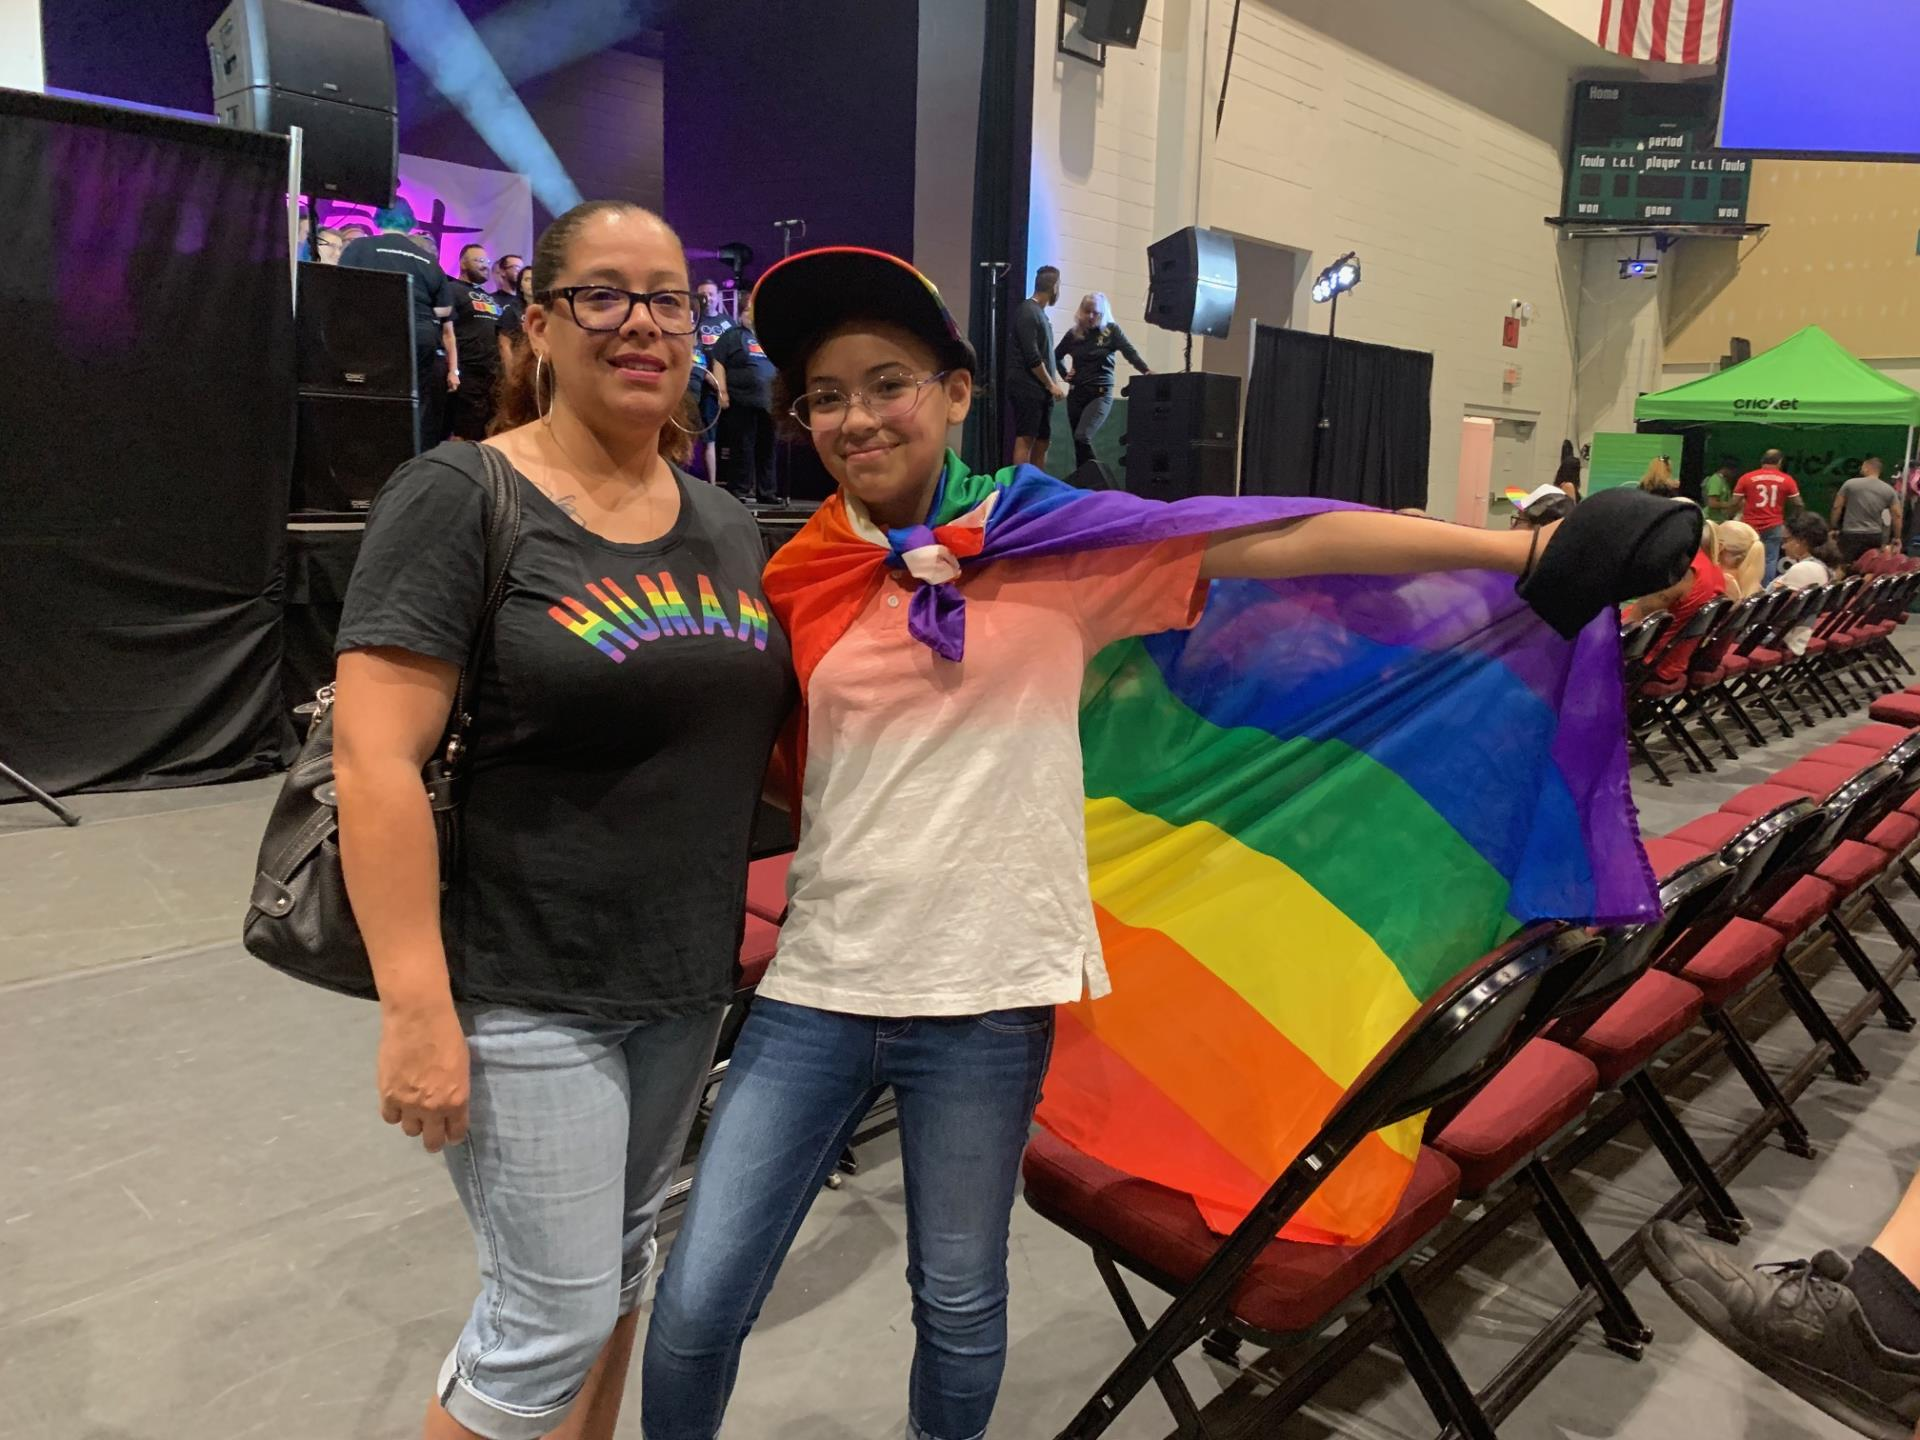 This is a photo of a boy and woman with a rainbow flag at Pridefest Kissimmee at the Kissimmee Civic Center